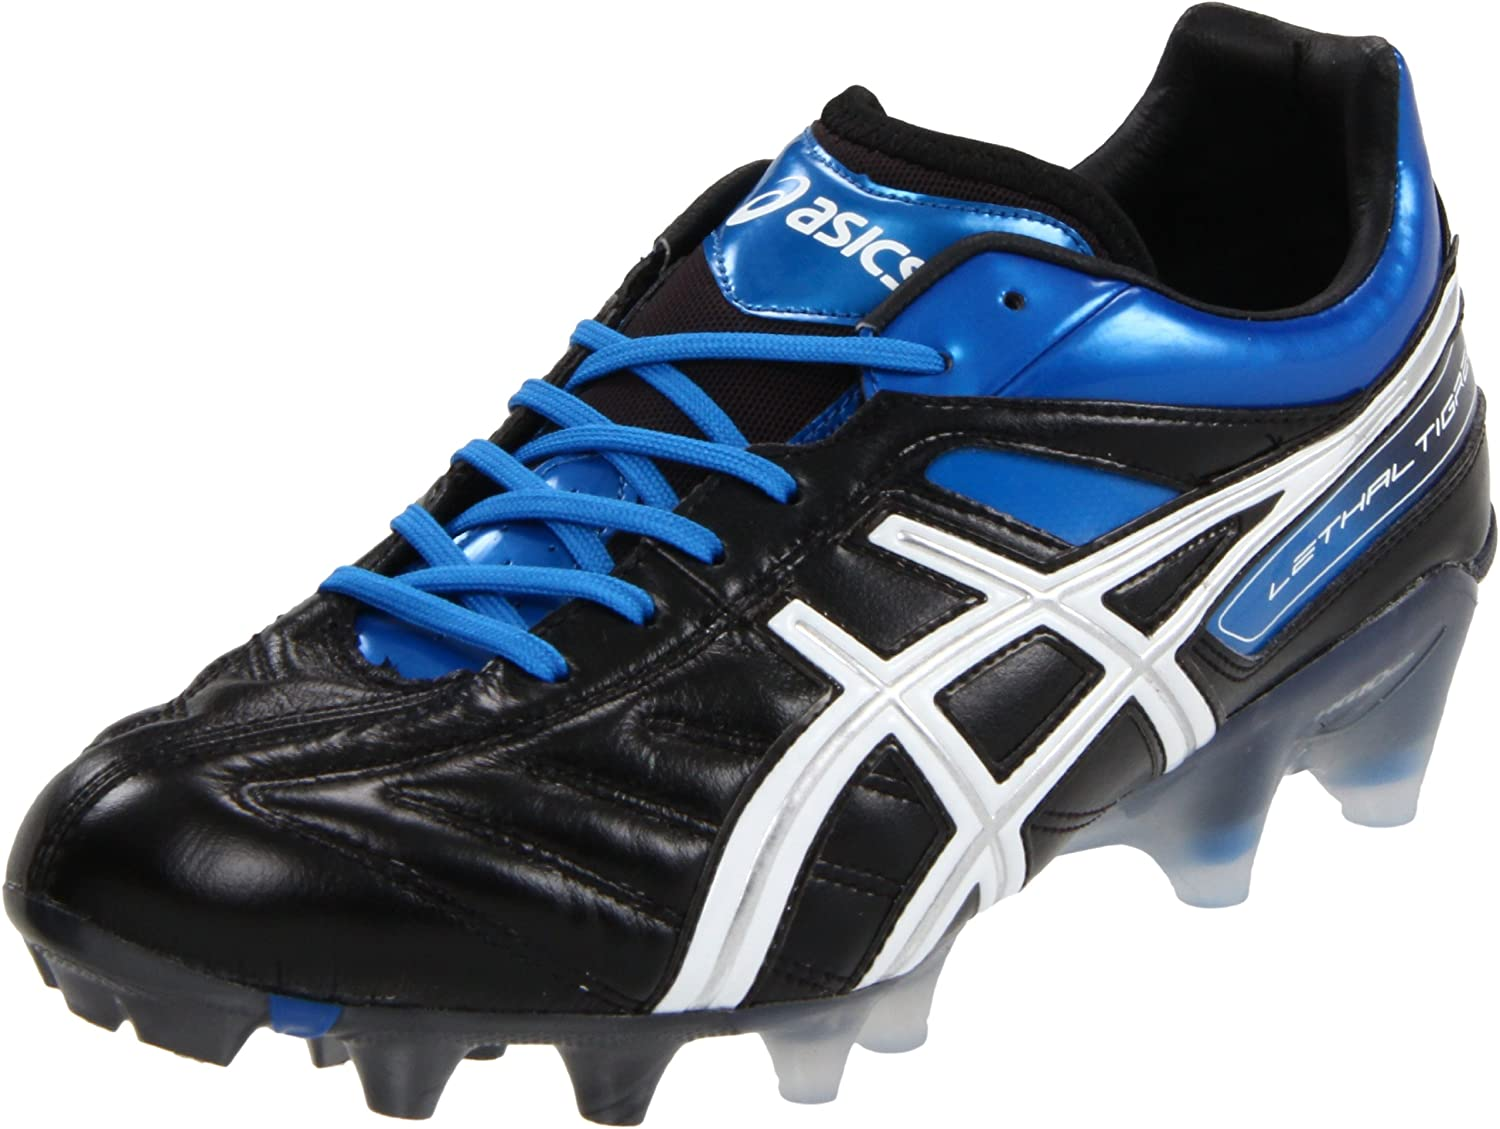 ASICS メンズ B004FV51M2 14 D(M) US|Black/White/Pacific Blue Black/White/Pacific Blue 14 D(M) US